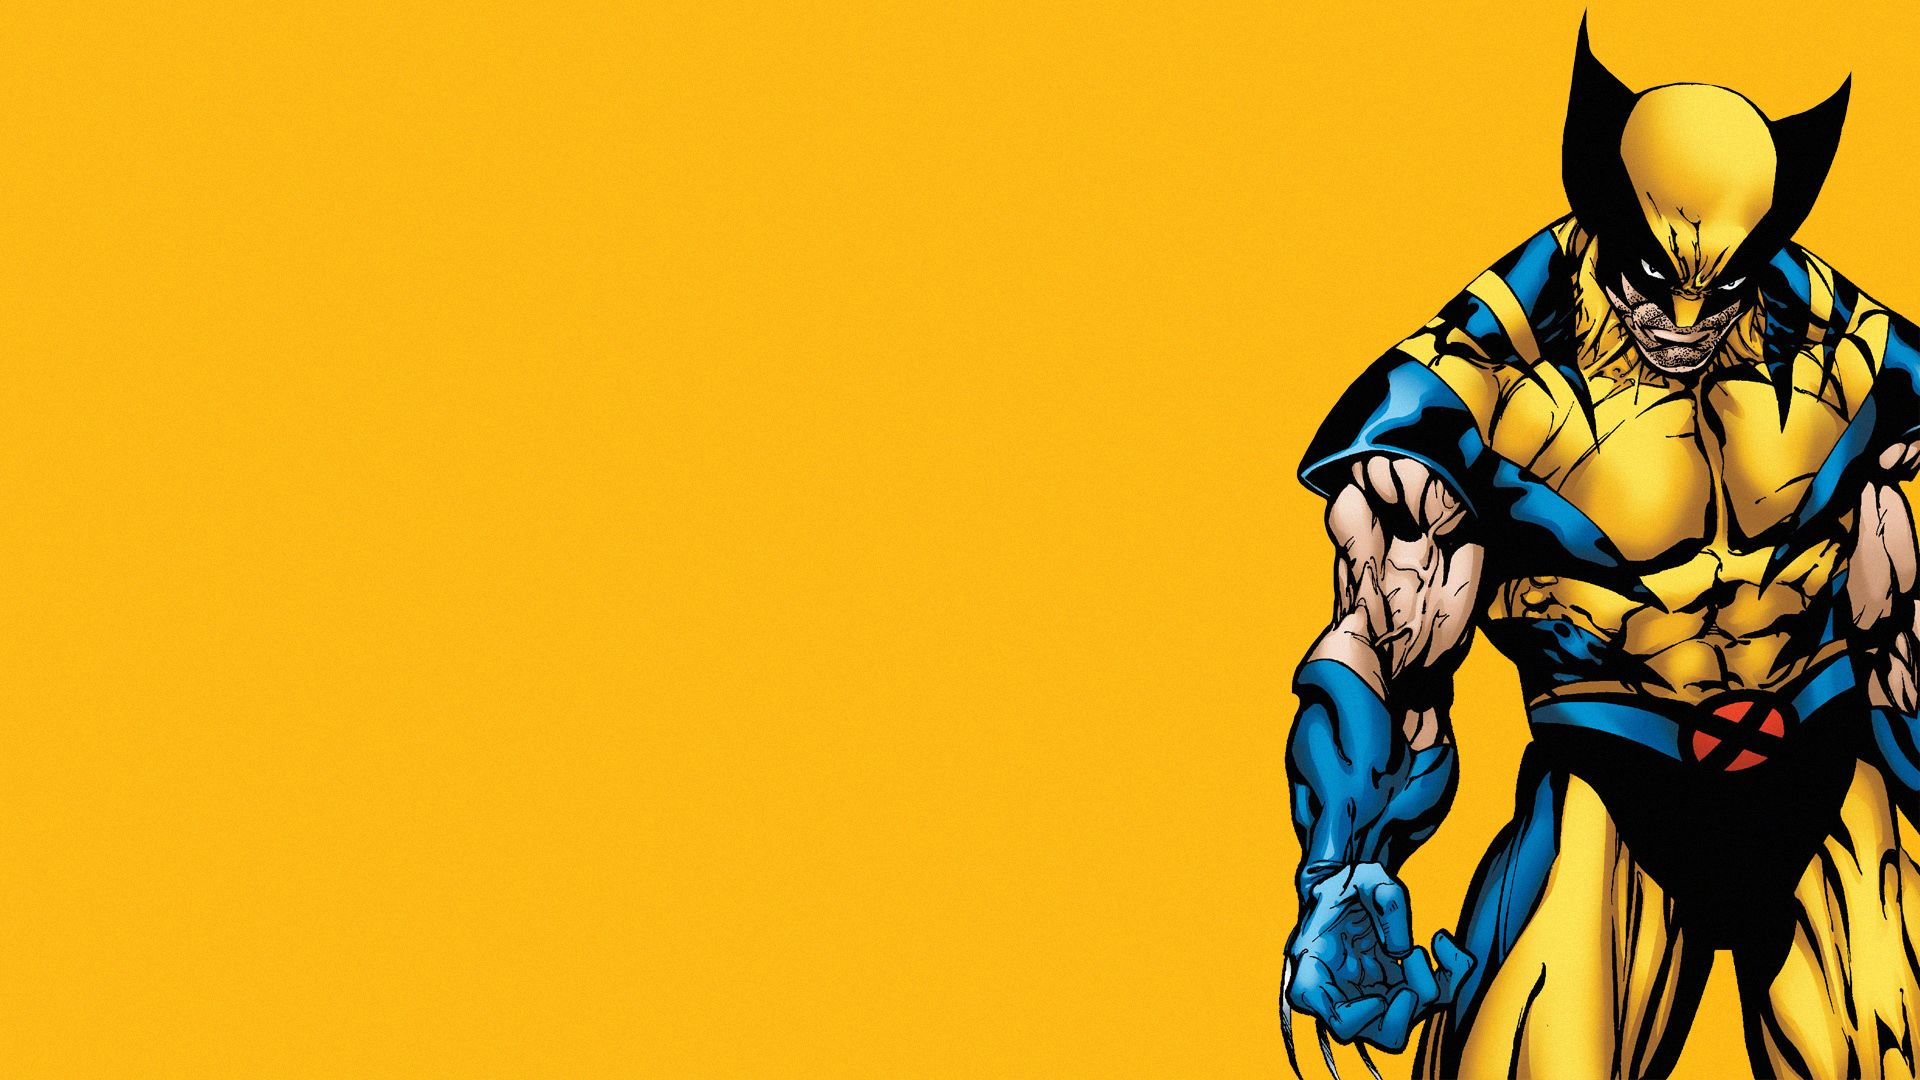 Beautiful Wallpaper Marvel Wolverine - a37be3b5a5db2e04b70e46e9fe46f0c3  Snapshot_1004355.jpg